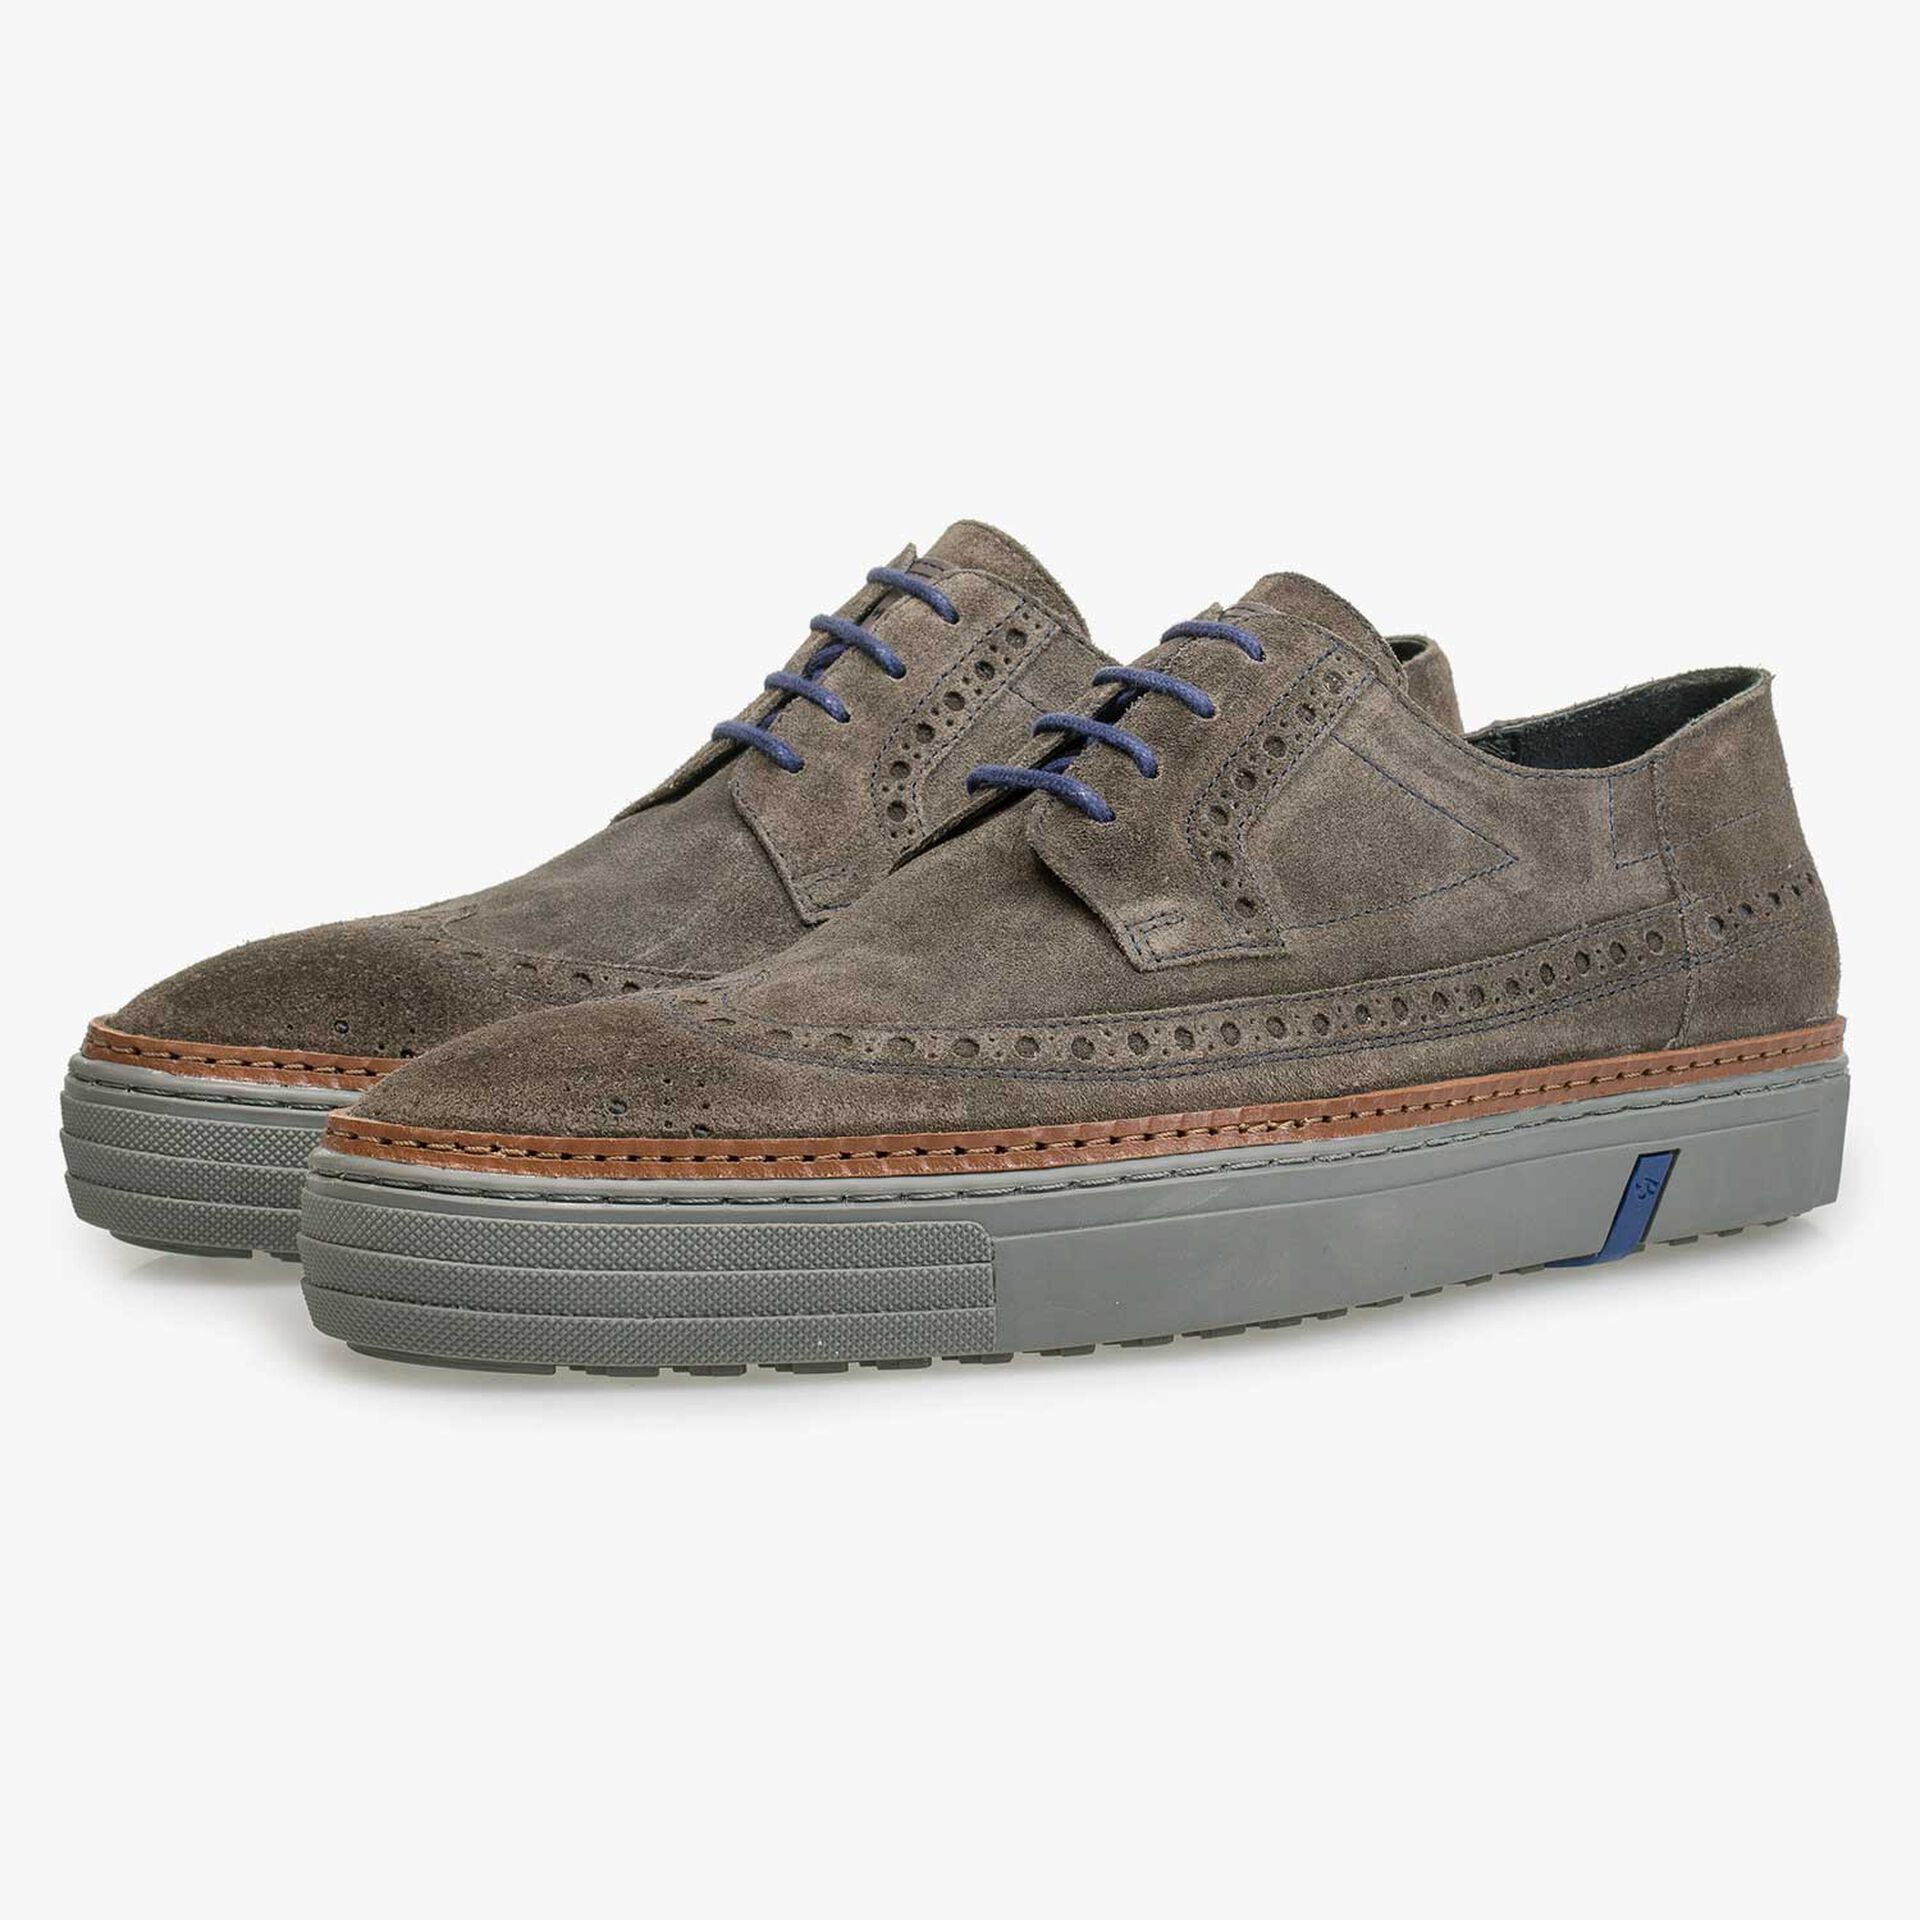 Suede leather sneaker with brogue details